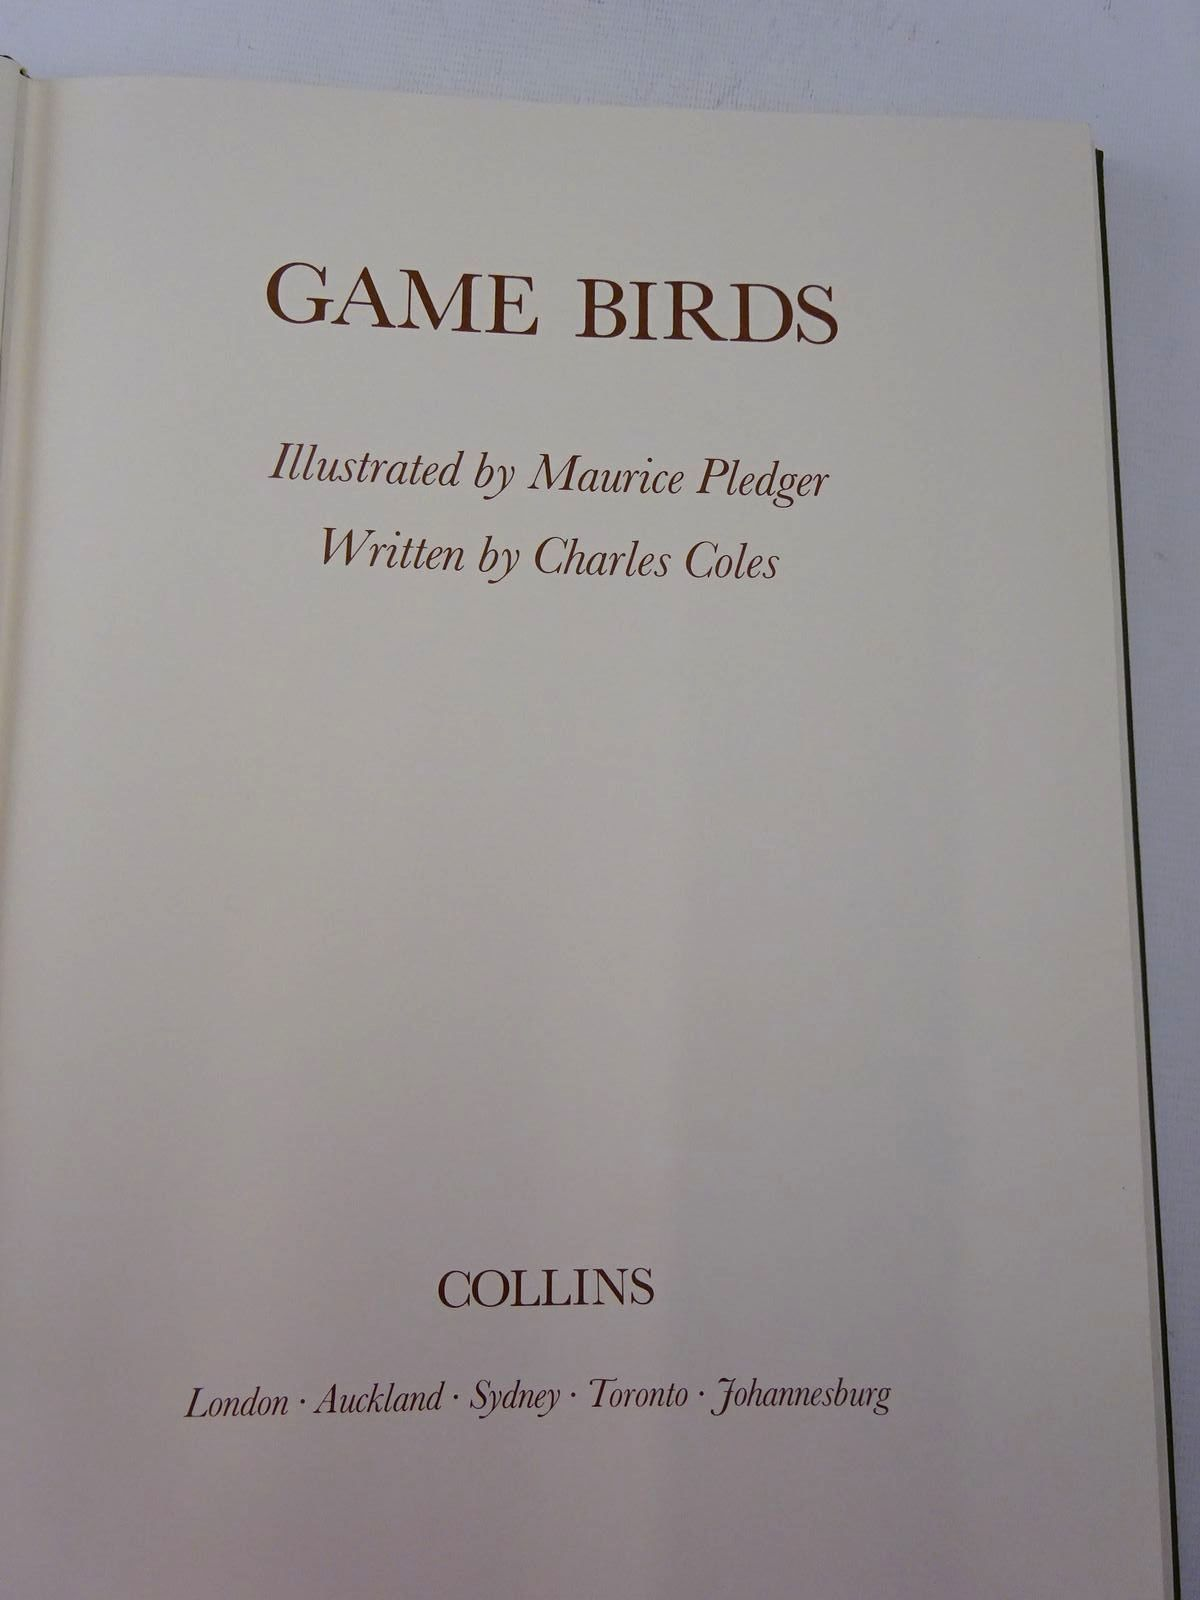 Photo of GAME BIRDS written by Coles, Charles illustrated by Pledger, Maurice published by Collins (STOCK CODE: 2129028)  for sale by Stella & Rose's Books